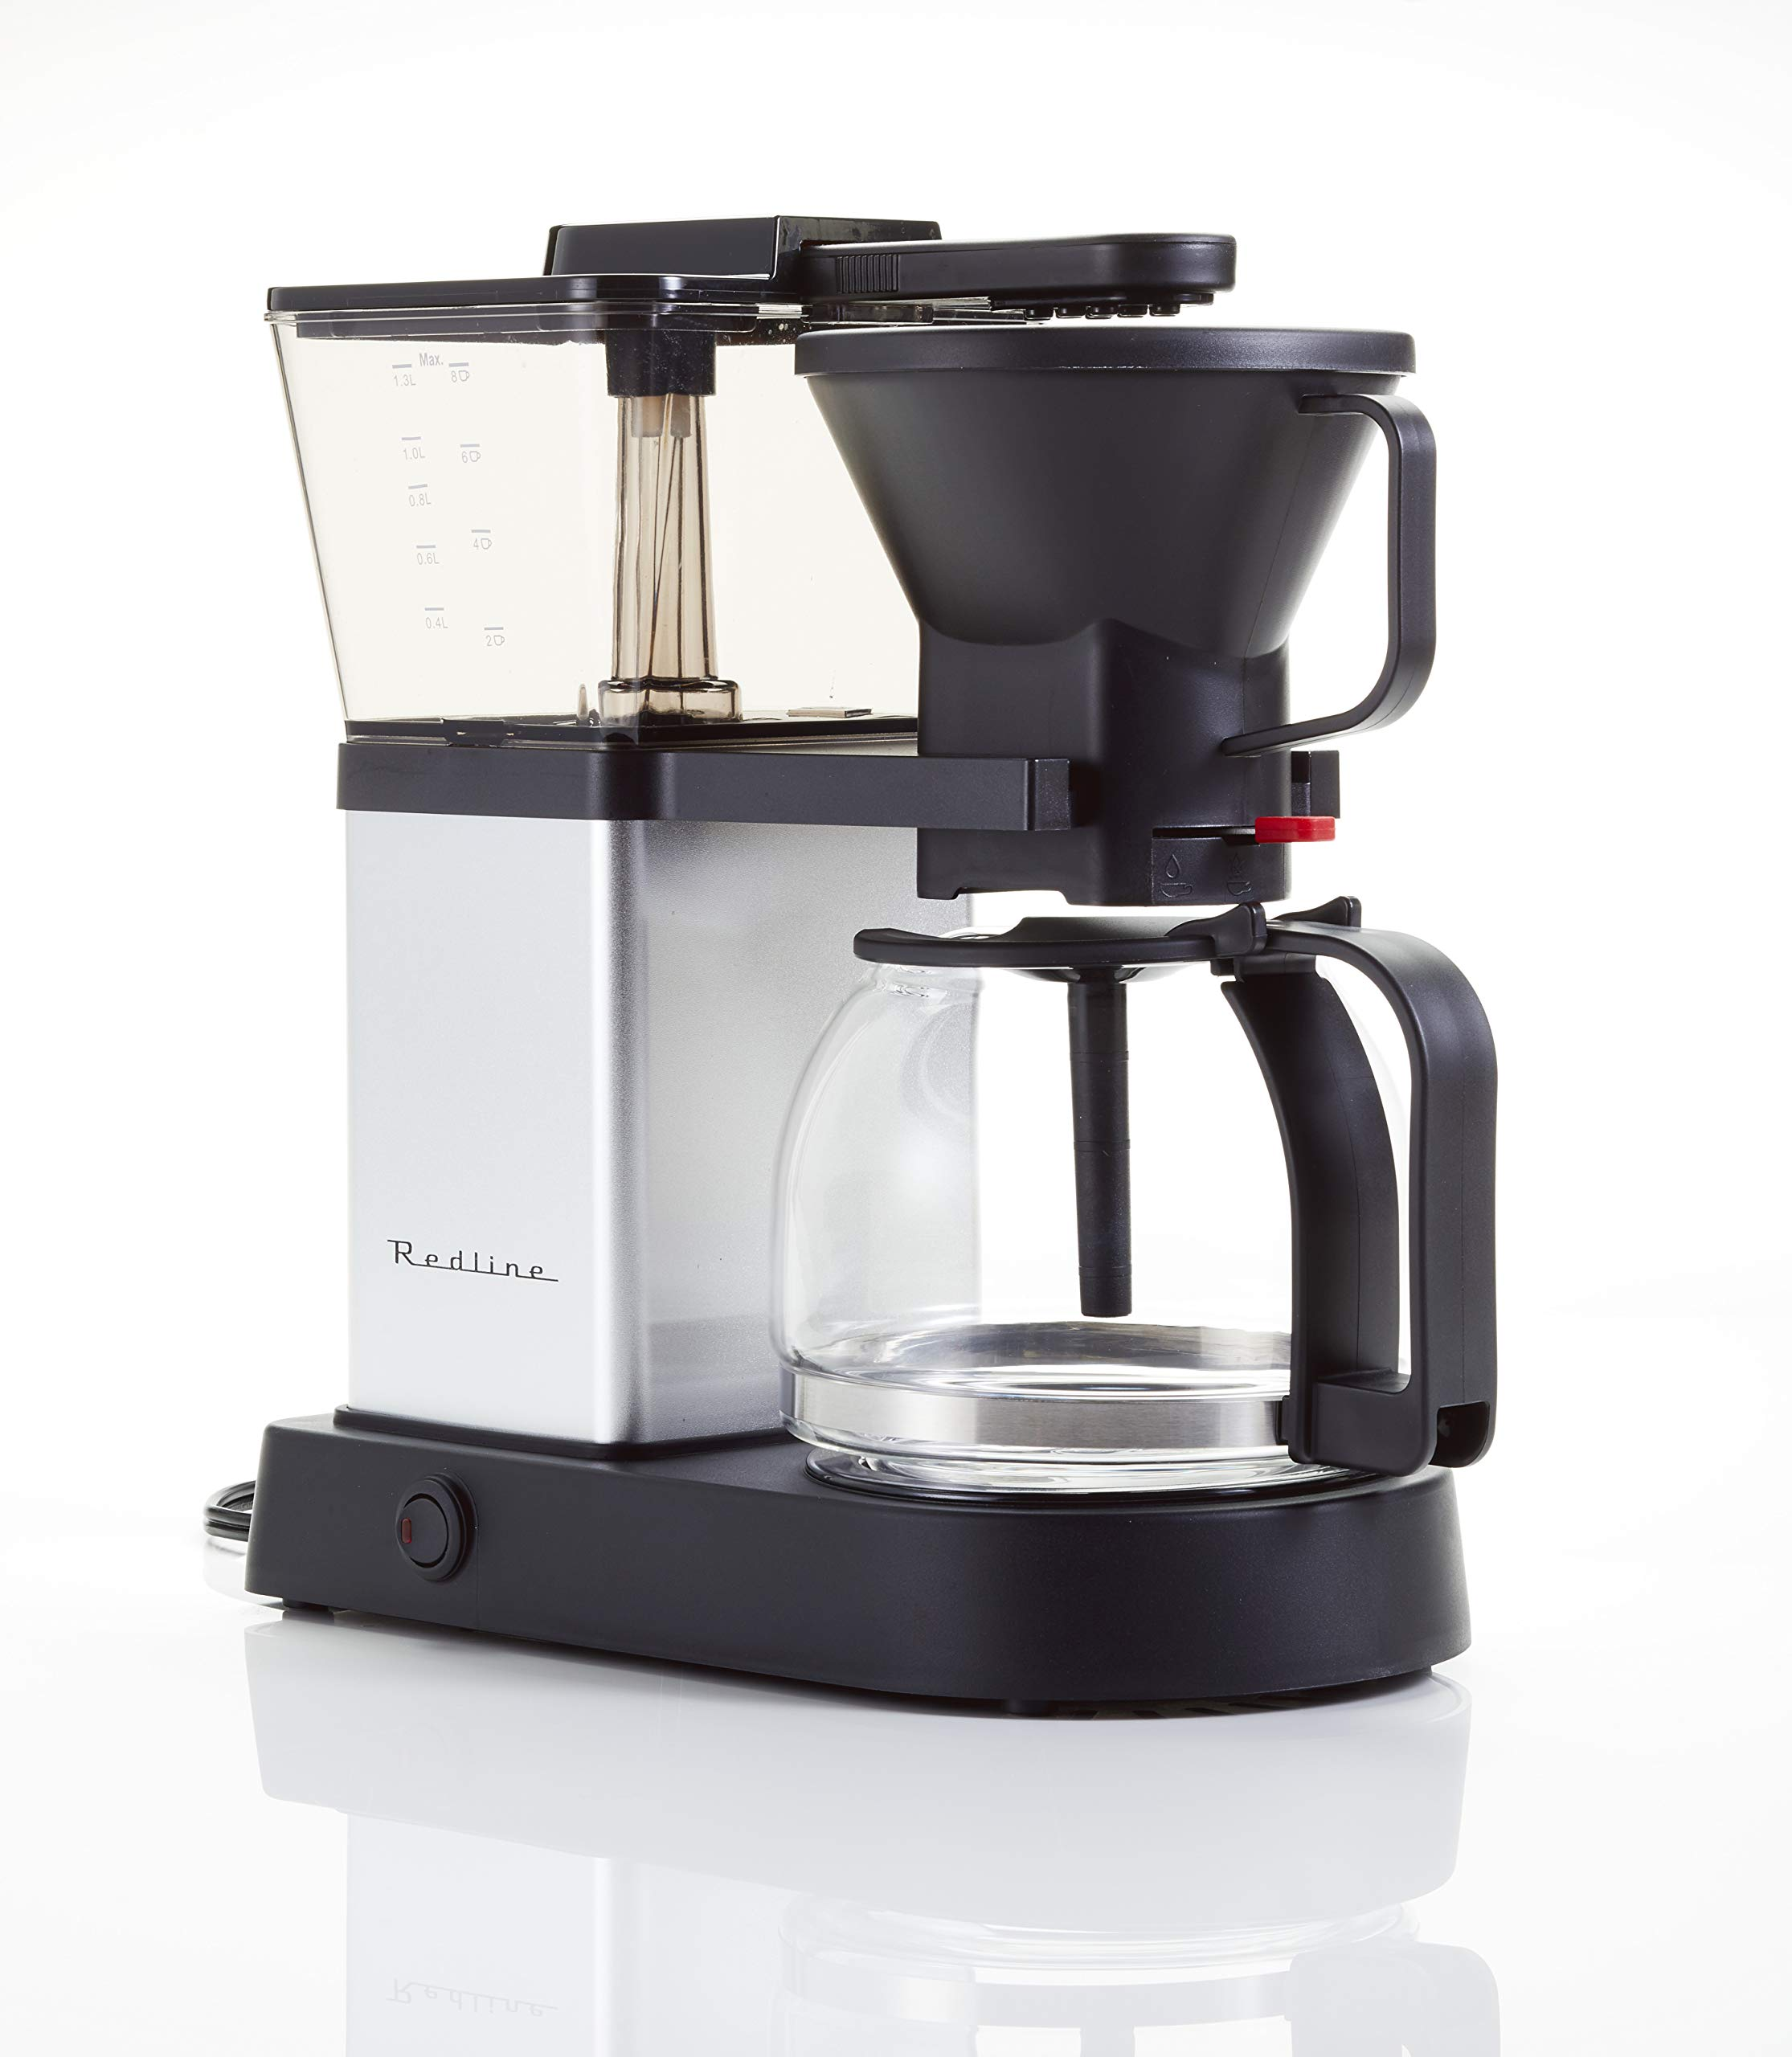 Redline MK1 8 Cup Coffee Brewer with Glass Carafe, Hot Plate and Pre-Infusion Mode (Summer 2018 Refresh) by Redline Coffee (Image #2)